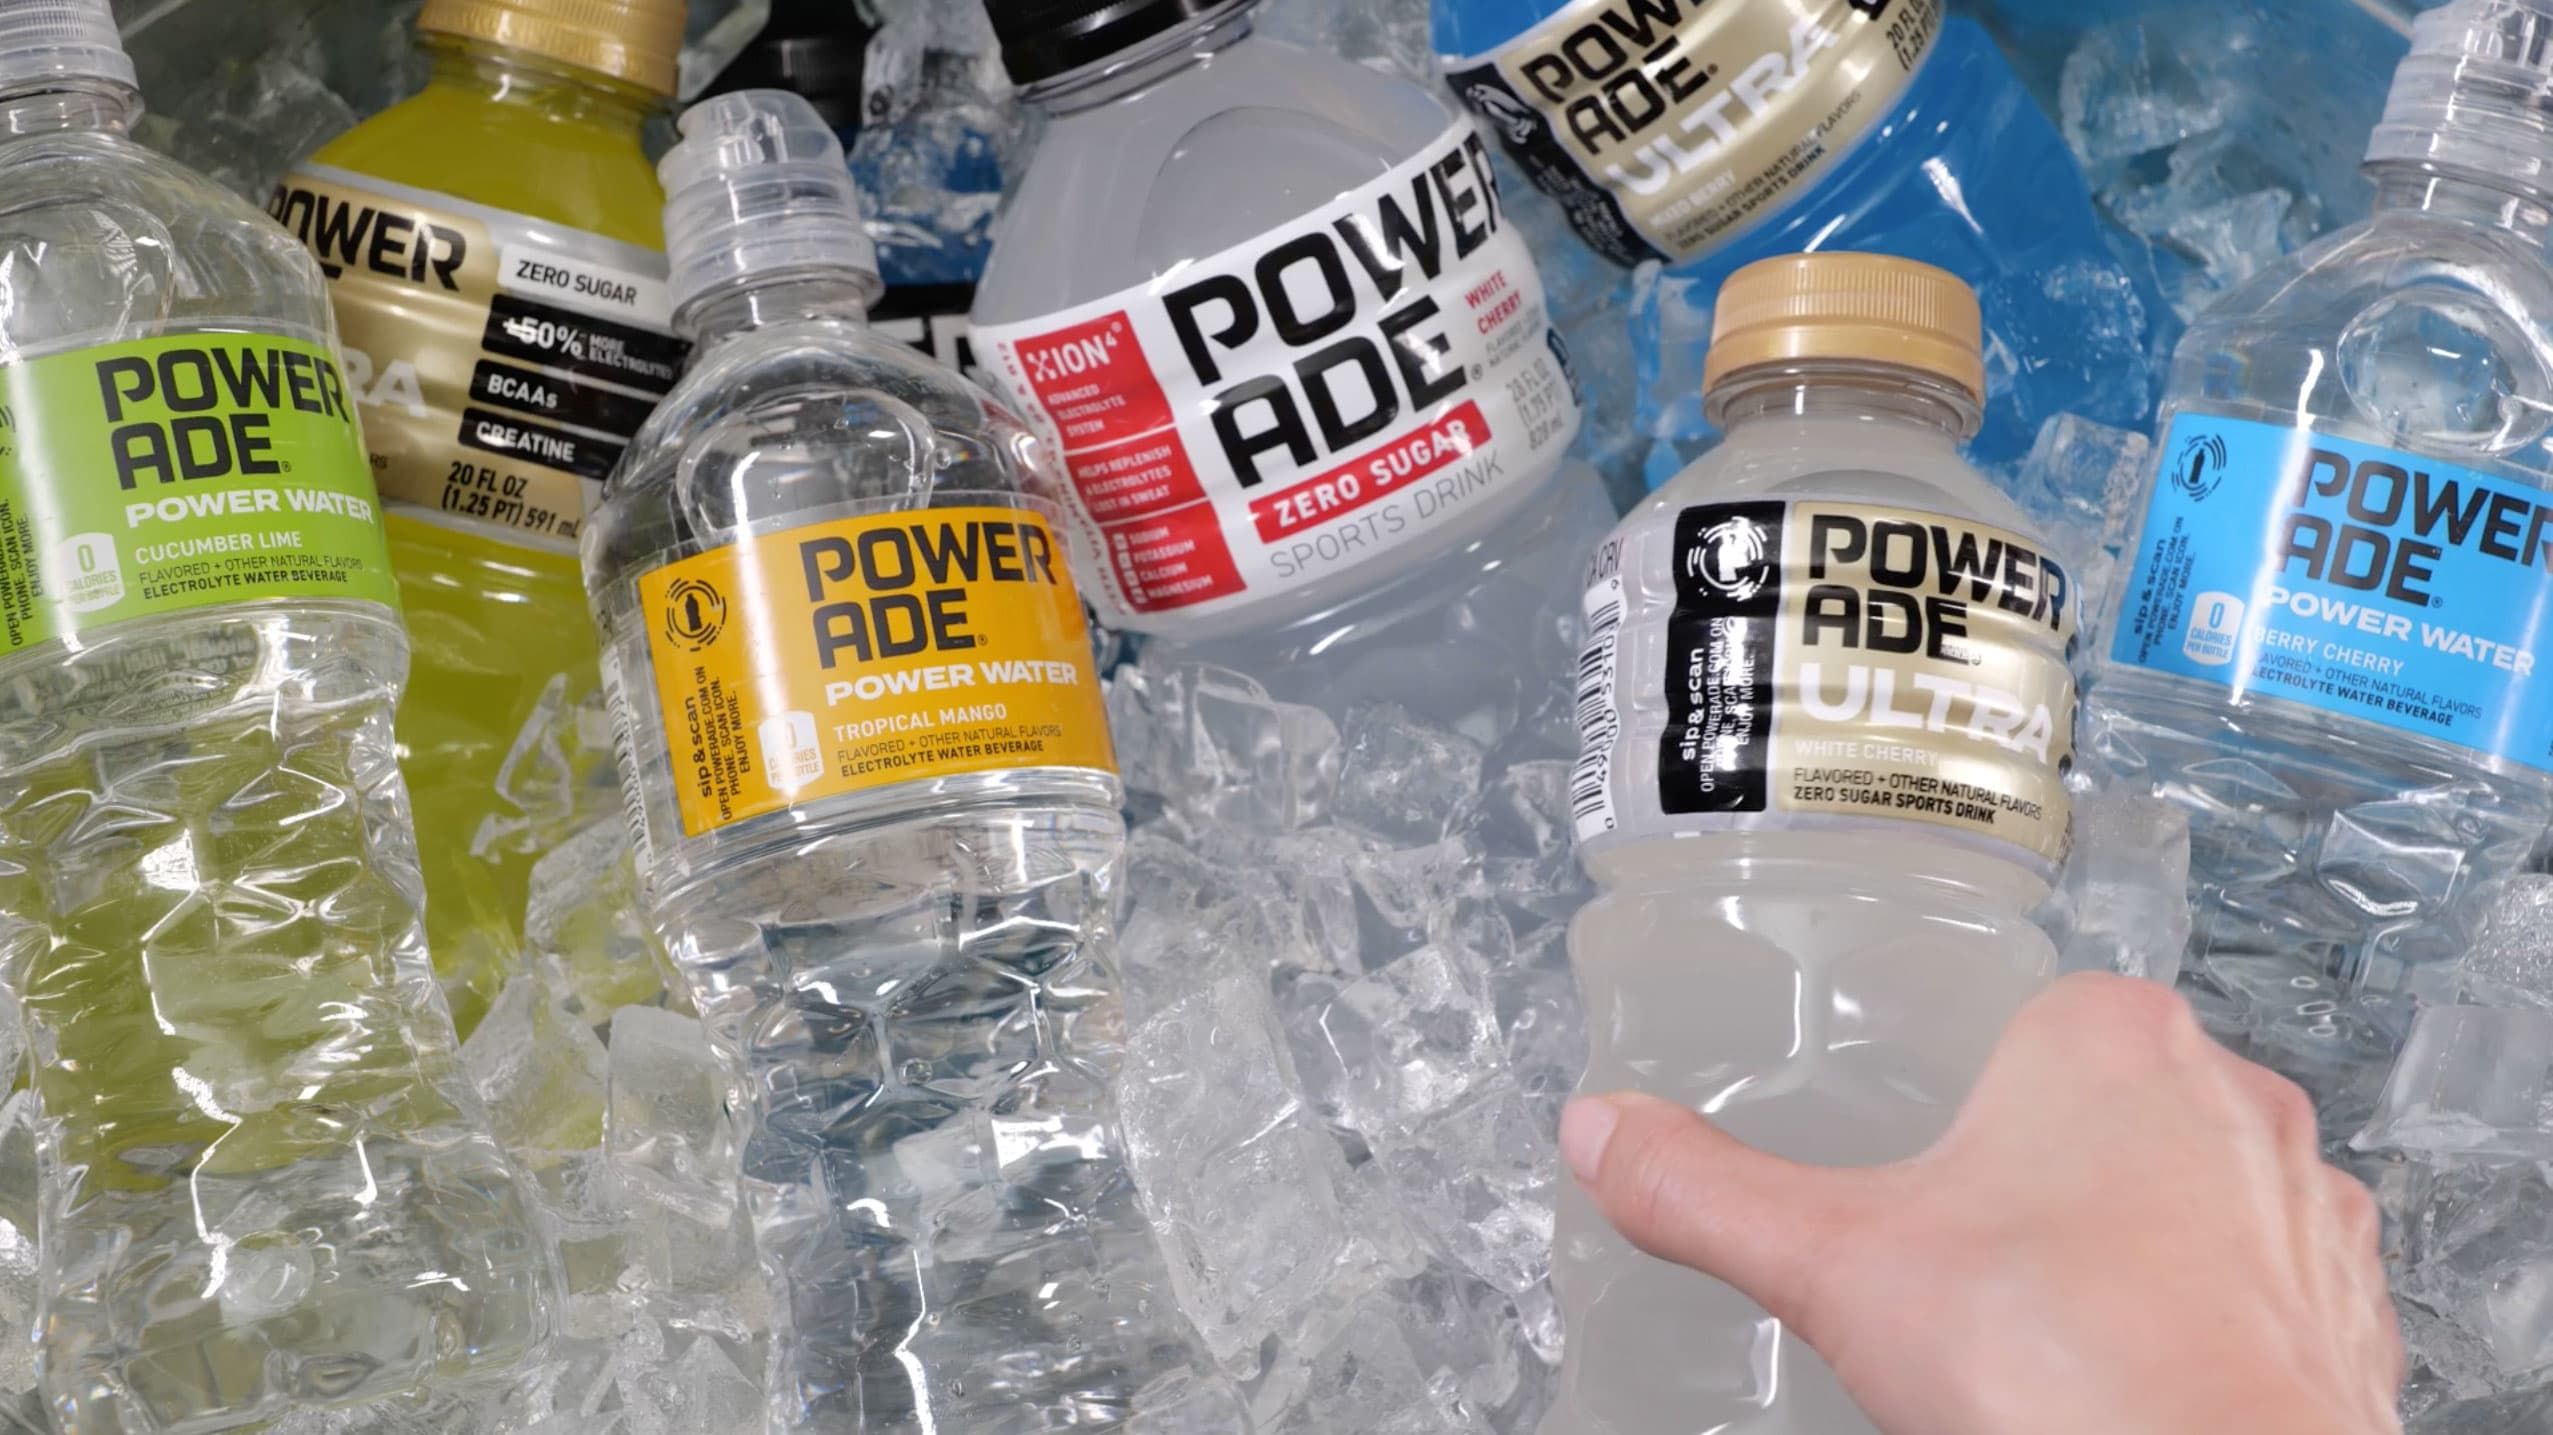 Powerade Is Launching 2 New Product Lines As Exercise Habits Change